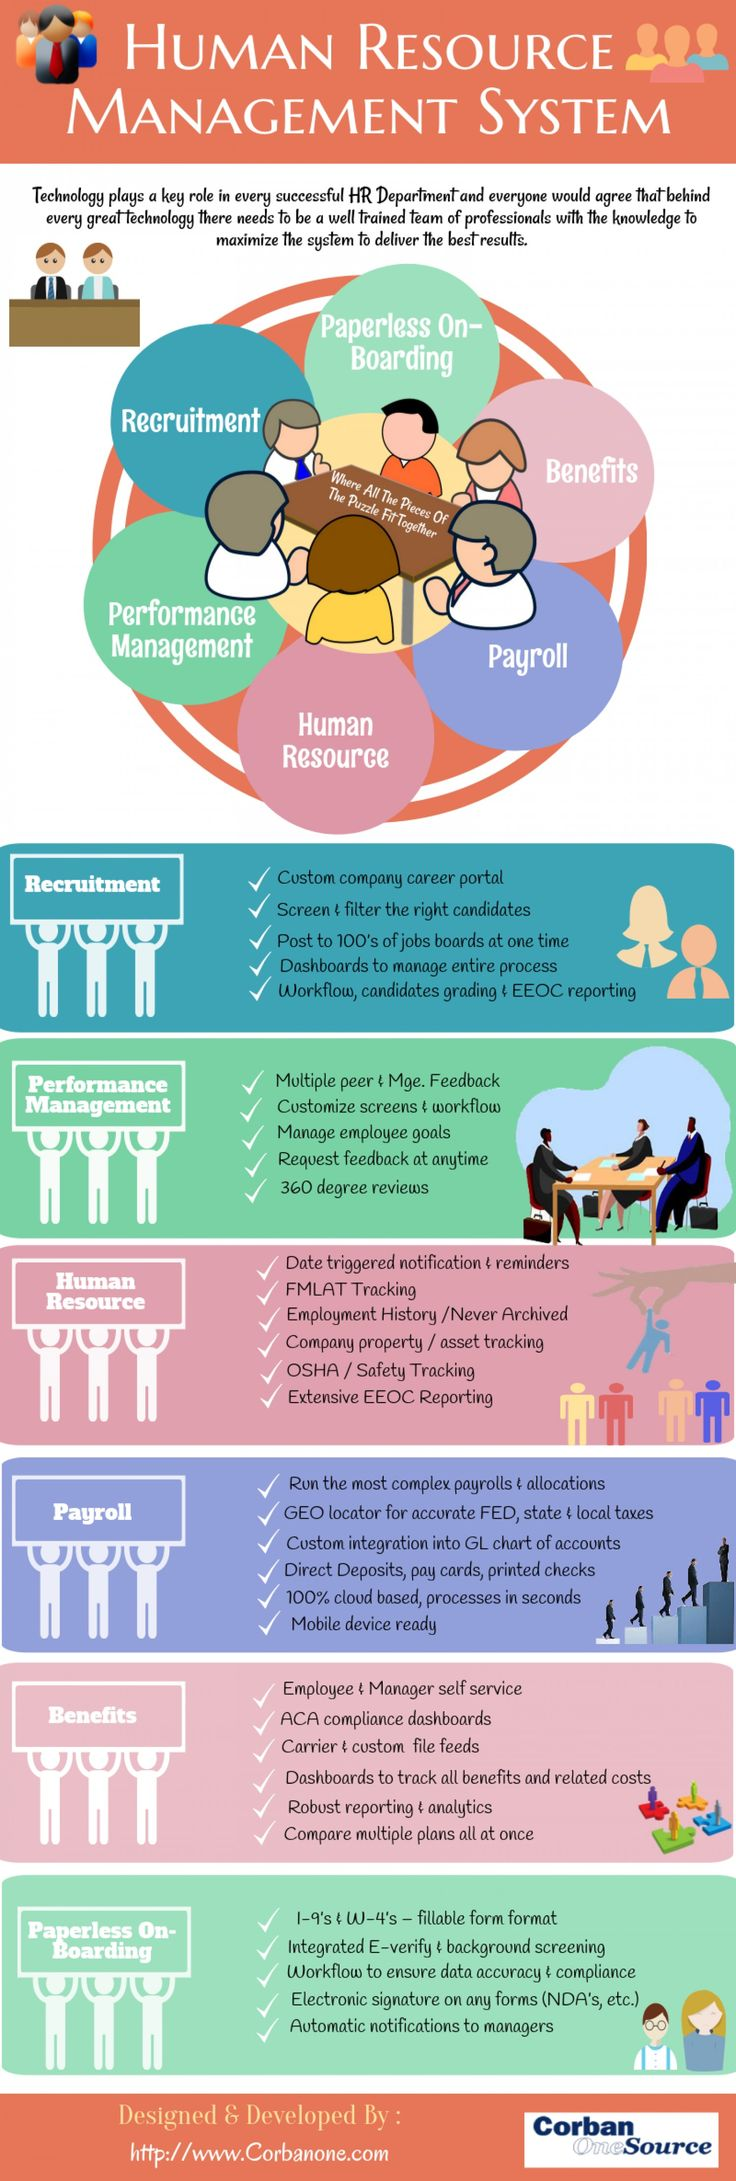 Human Resource Management System Infographic